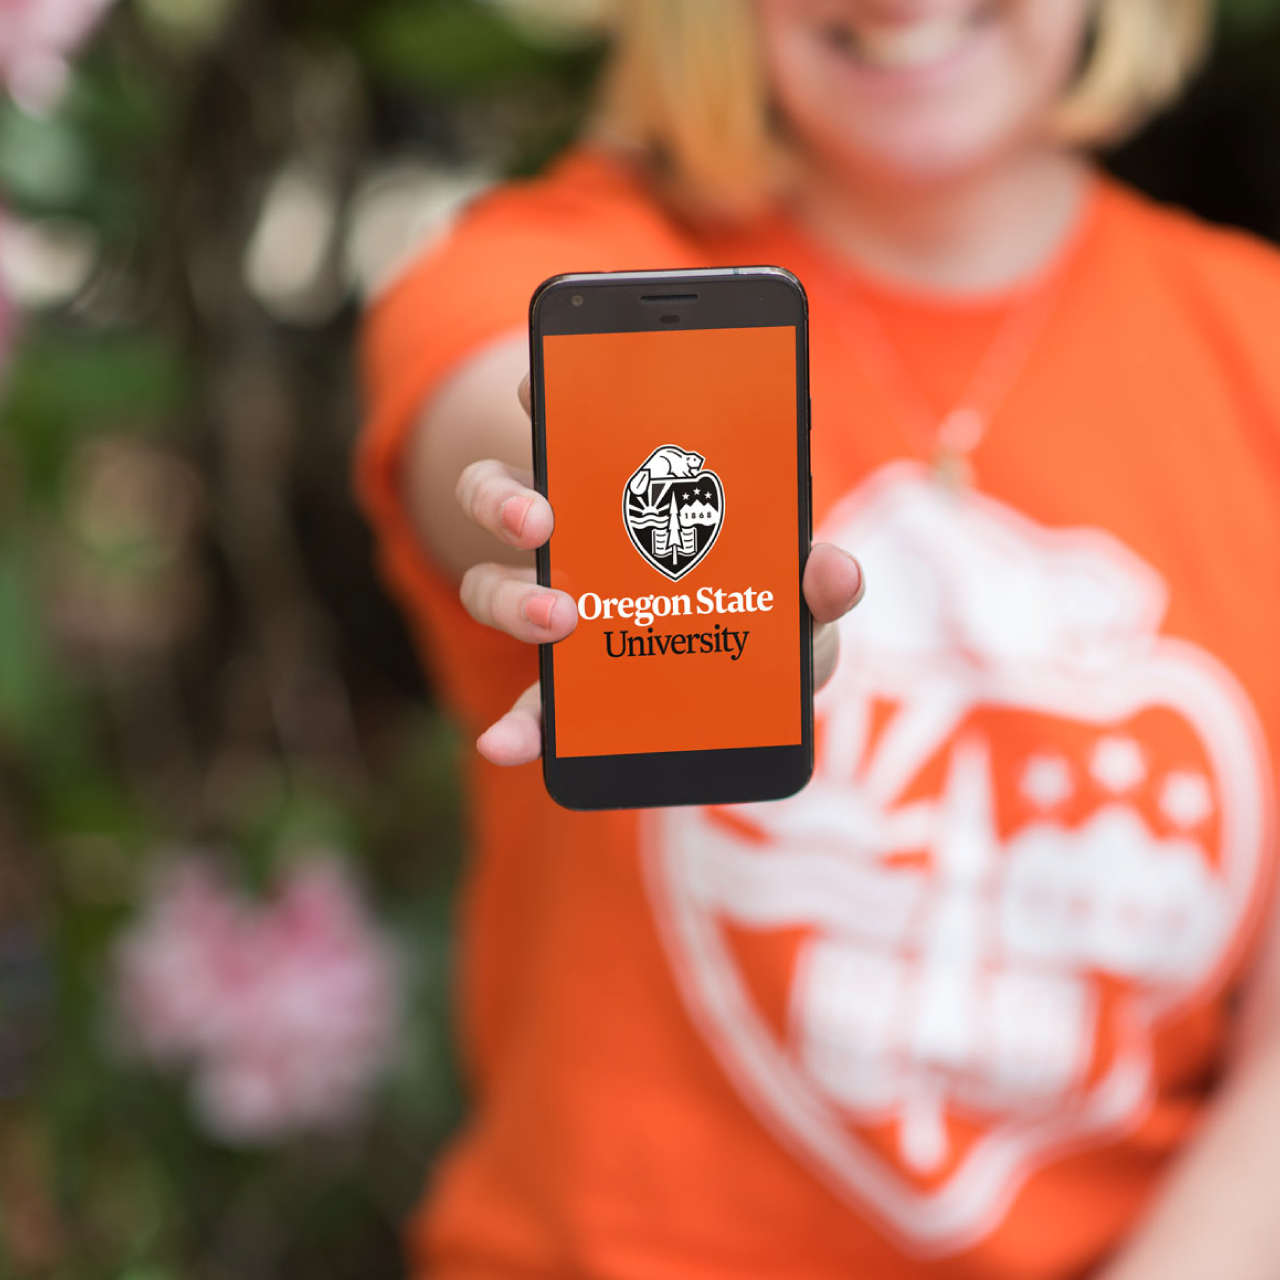 Woman holding phone displaying the OSU logo